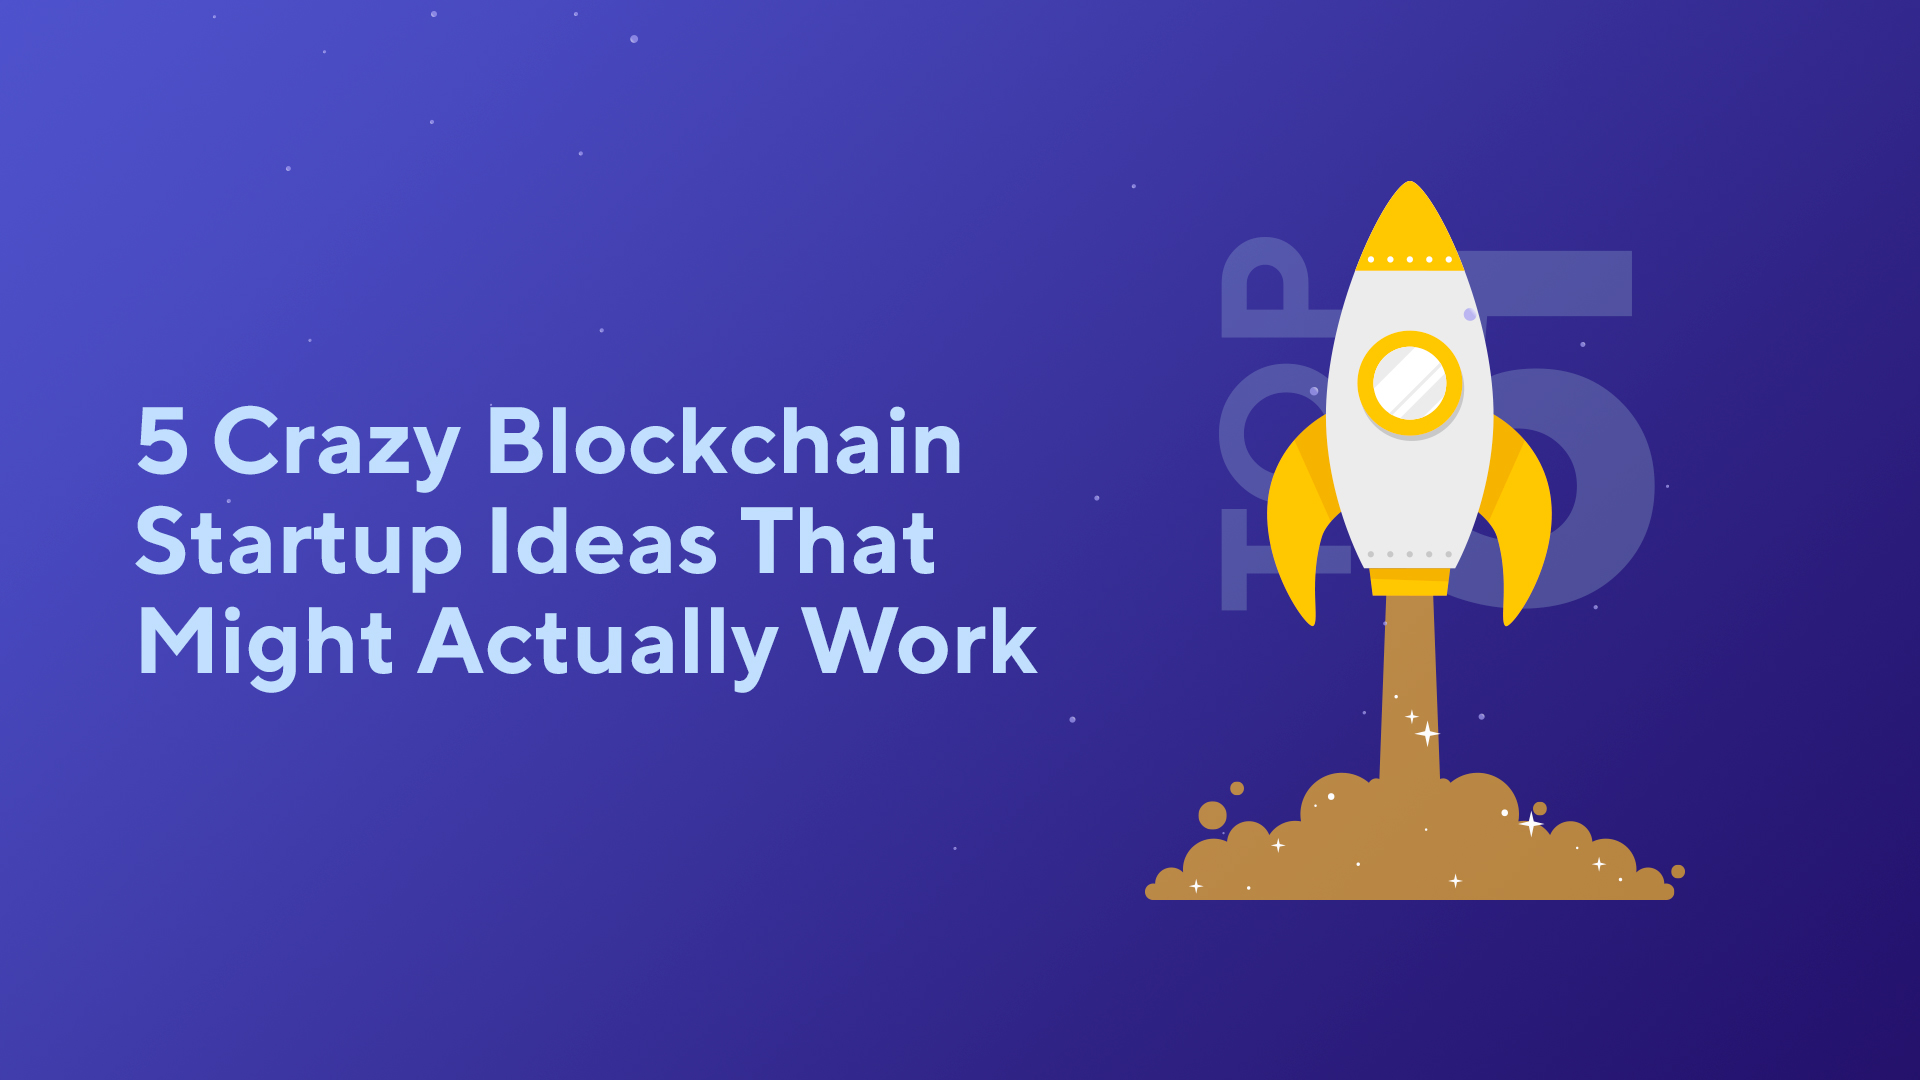 5 Crazy Blockchain Startup Ideas That Might Actually Work